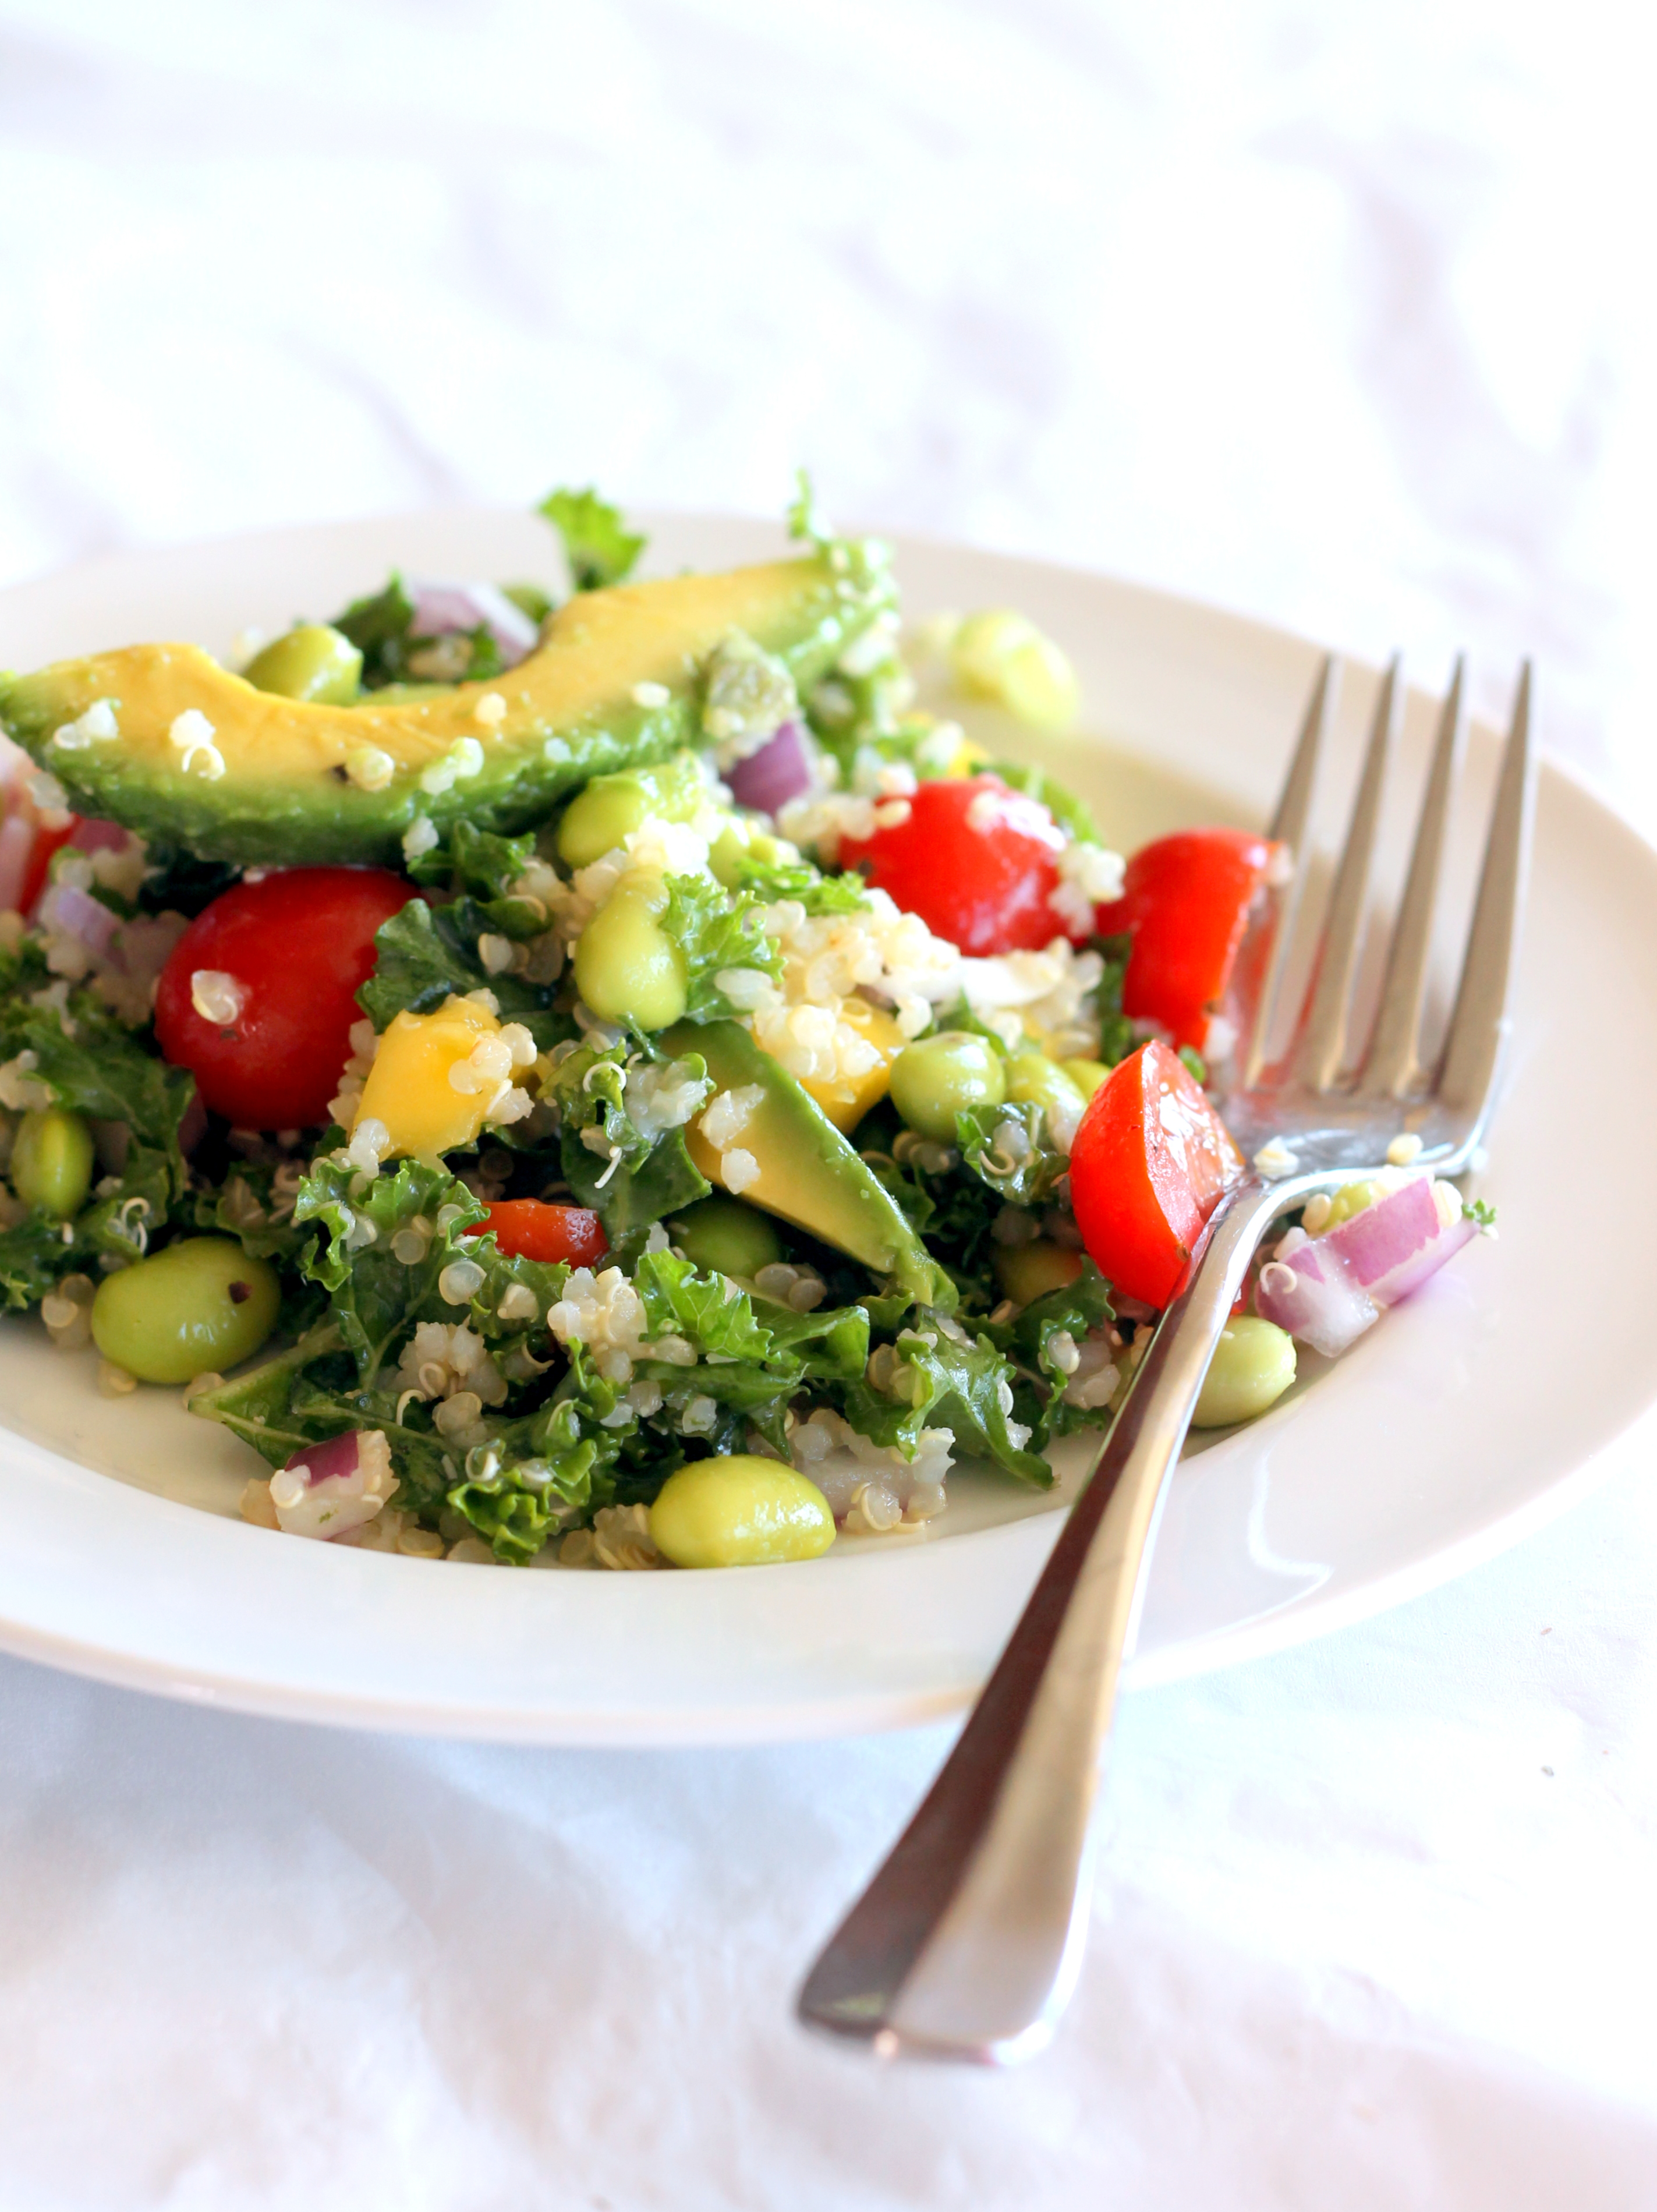 Kale, Edamame & Quinoa Salad With Lemon Vinaigrette  Ambitious Kitchen